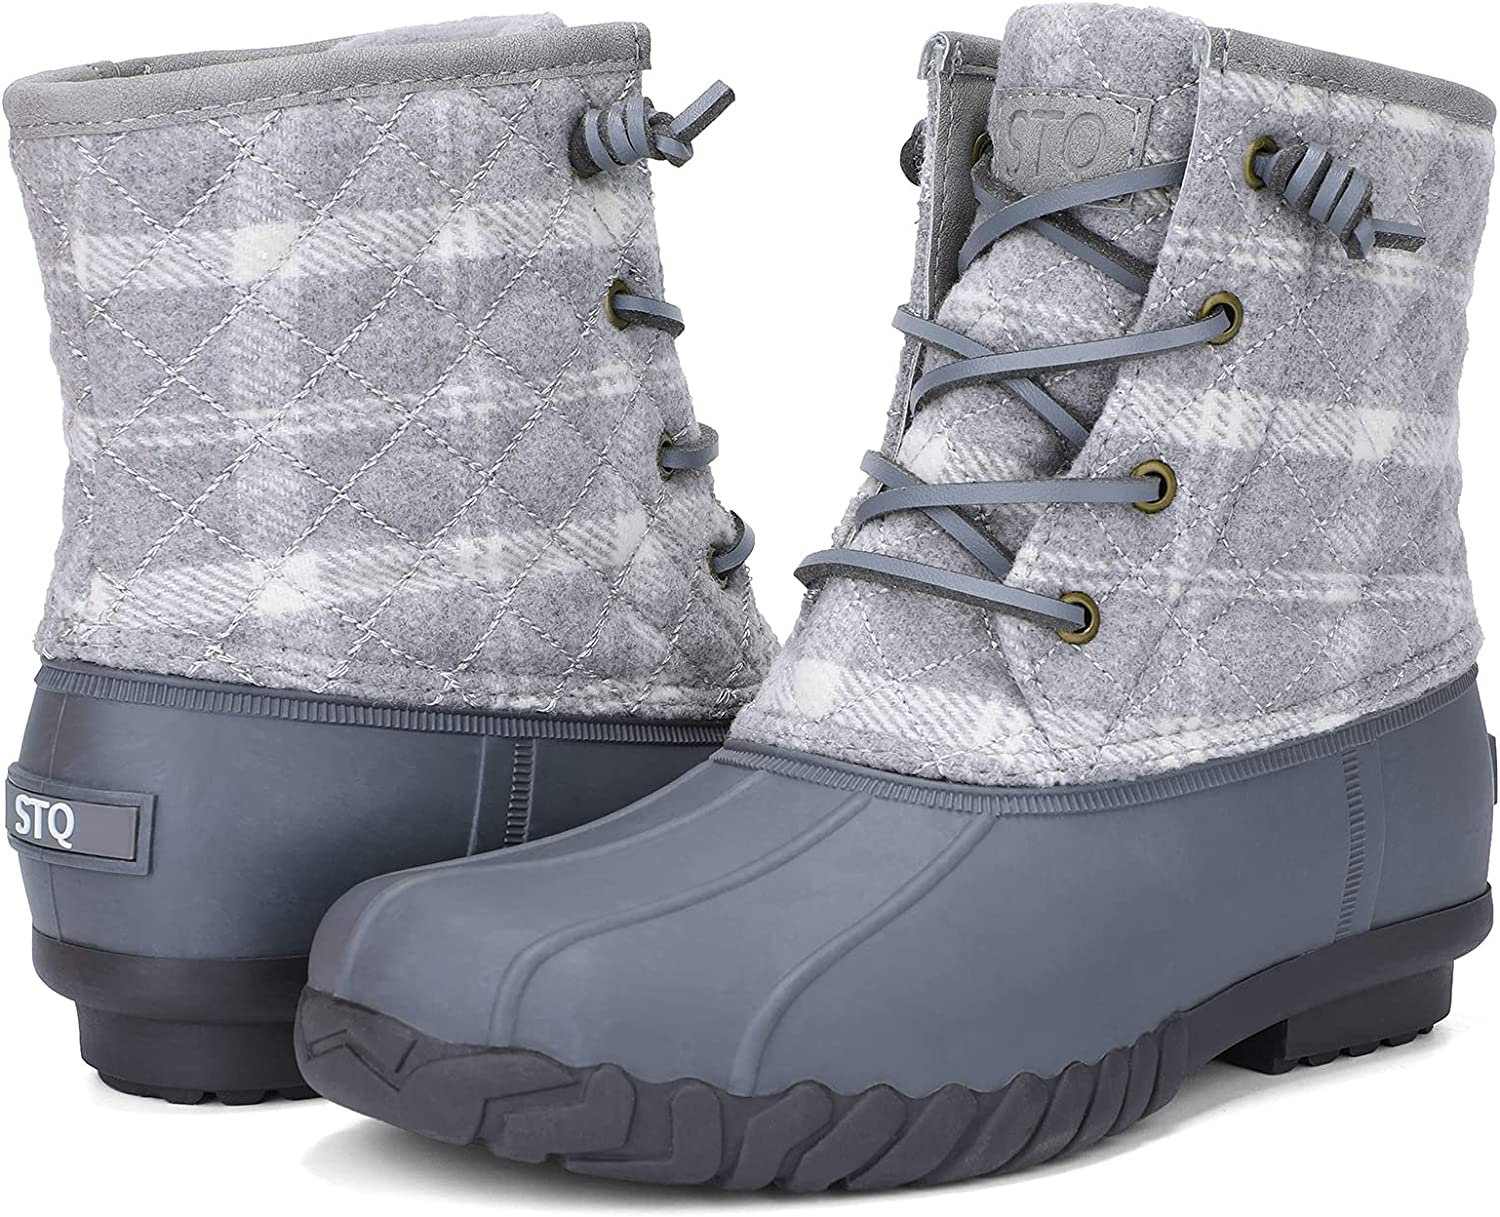 STQ Duck Boots for Women Waterproof Winter Boots Quilted Snow Boots